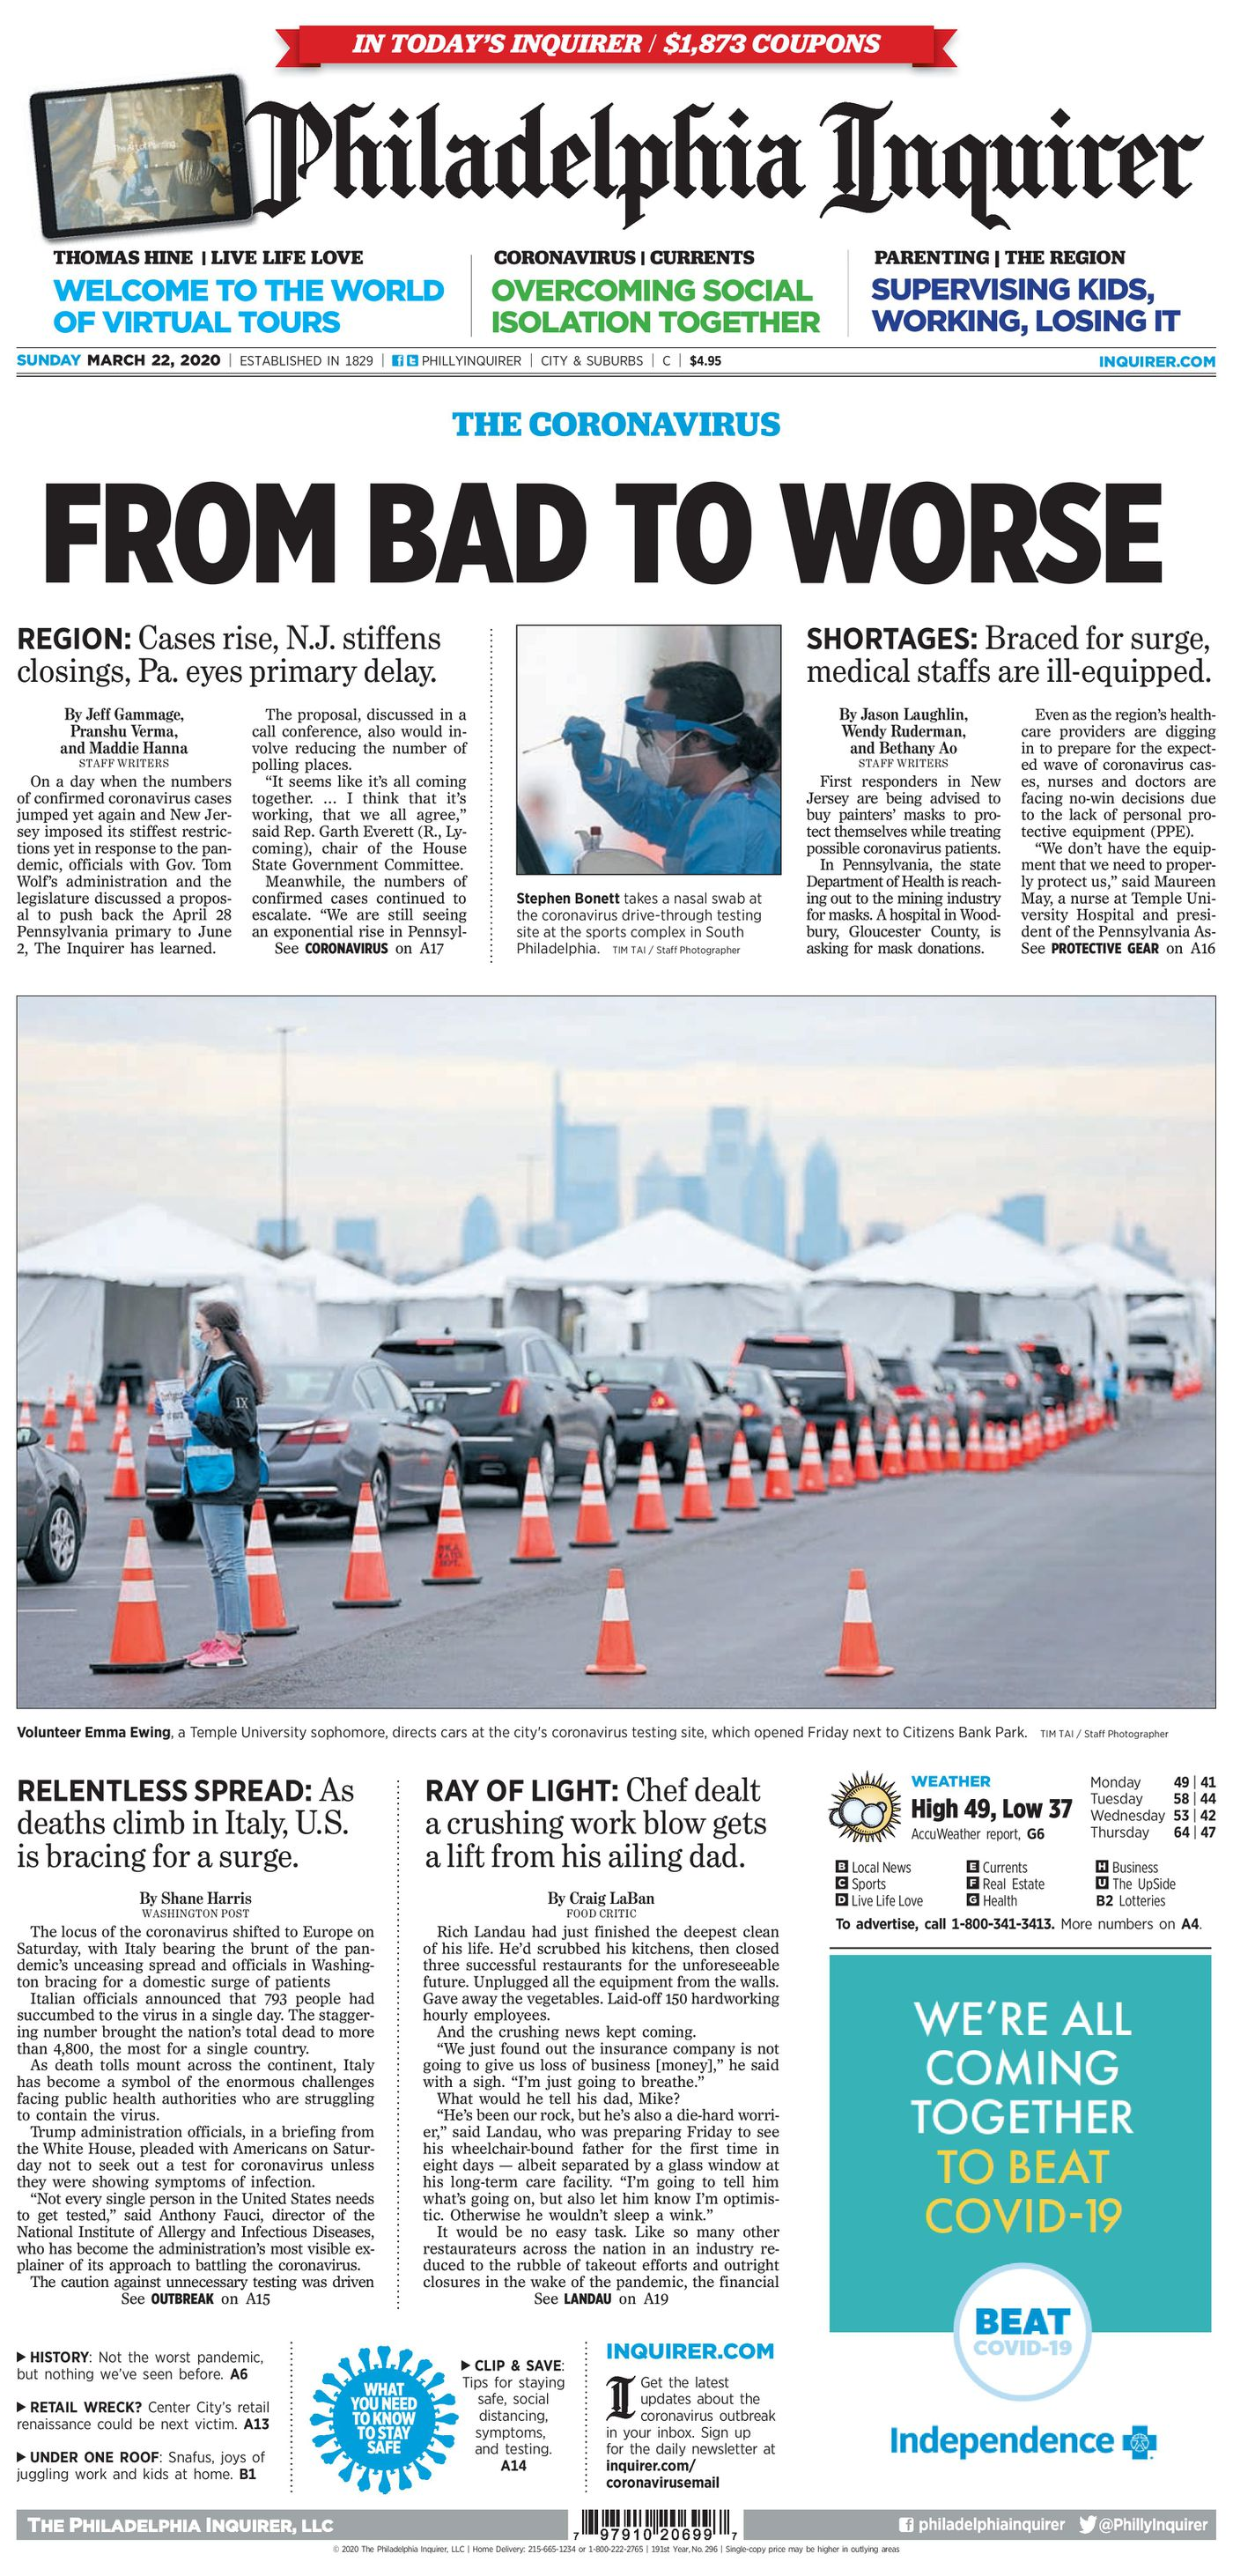 The Philadelphia Inquirer's front page on March 22